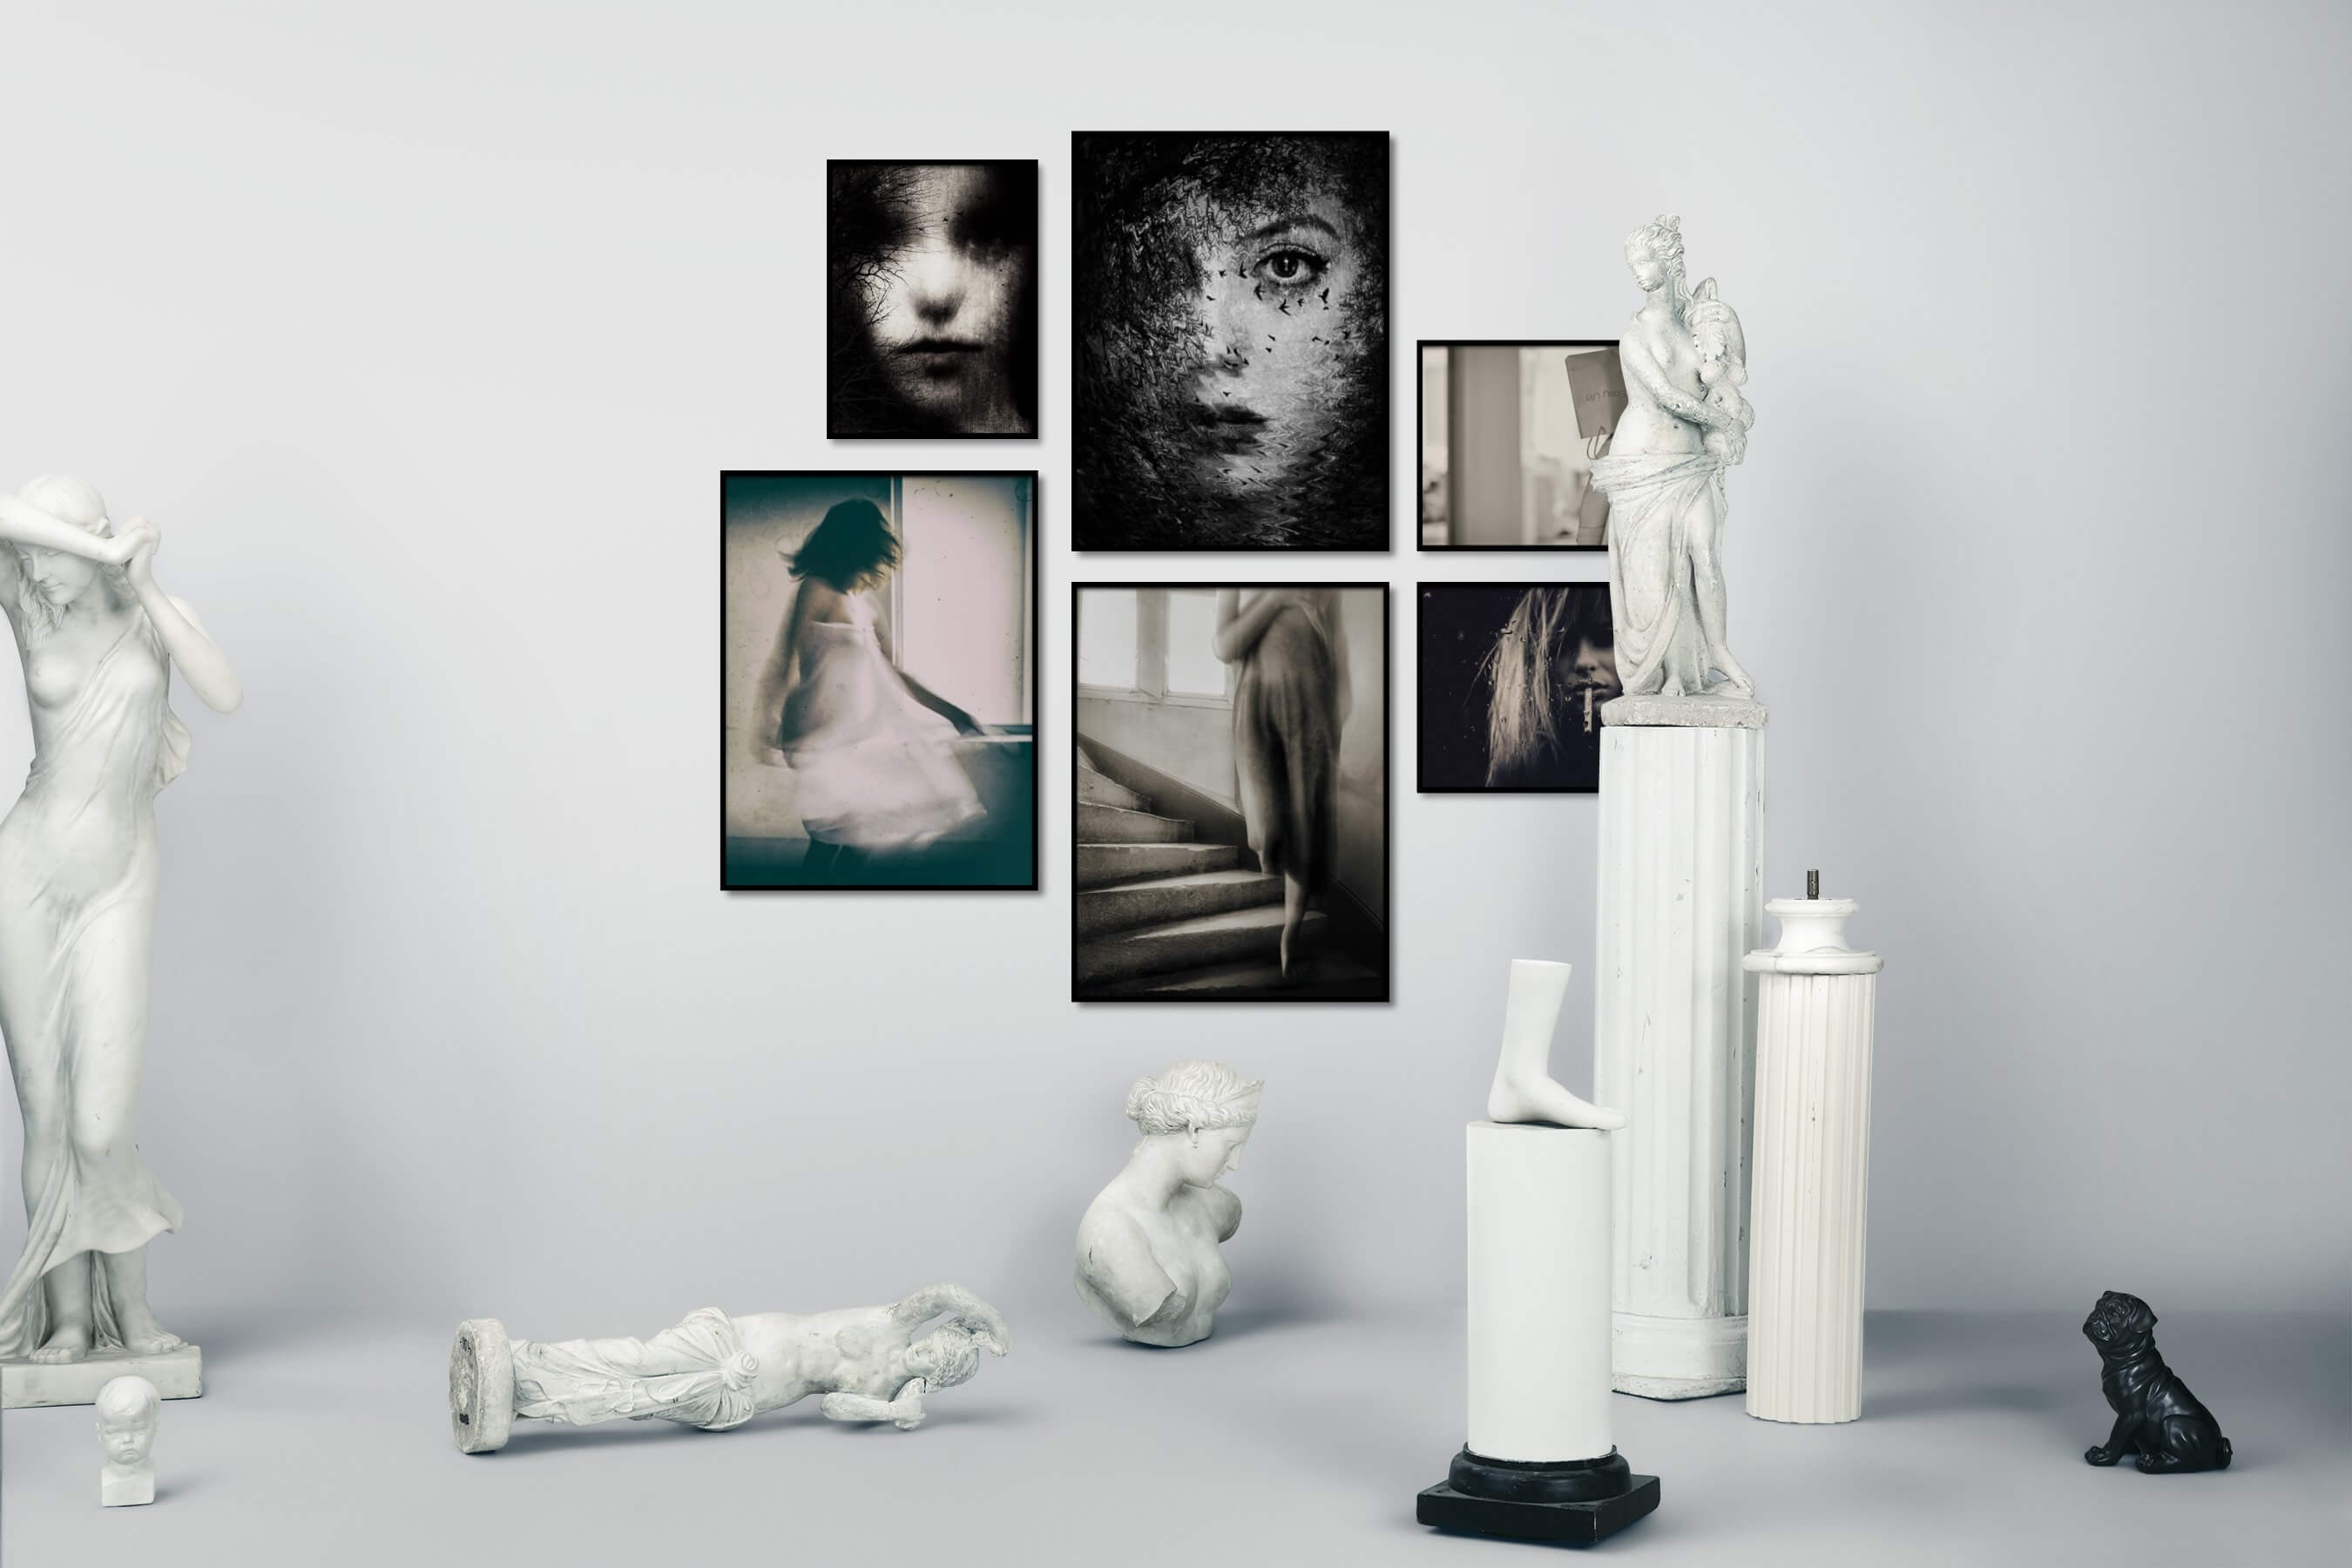 Gallery wall idea with six framed pictures arranged on a wall depicting Artsy, Black & White, Fashion & Beauty, Vintage, and Dark Tones